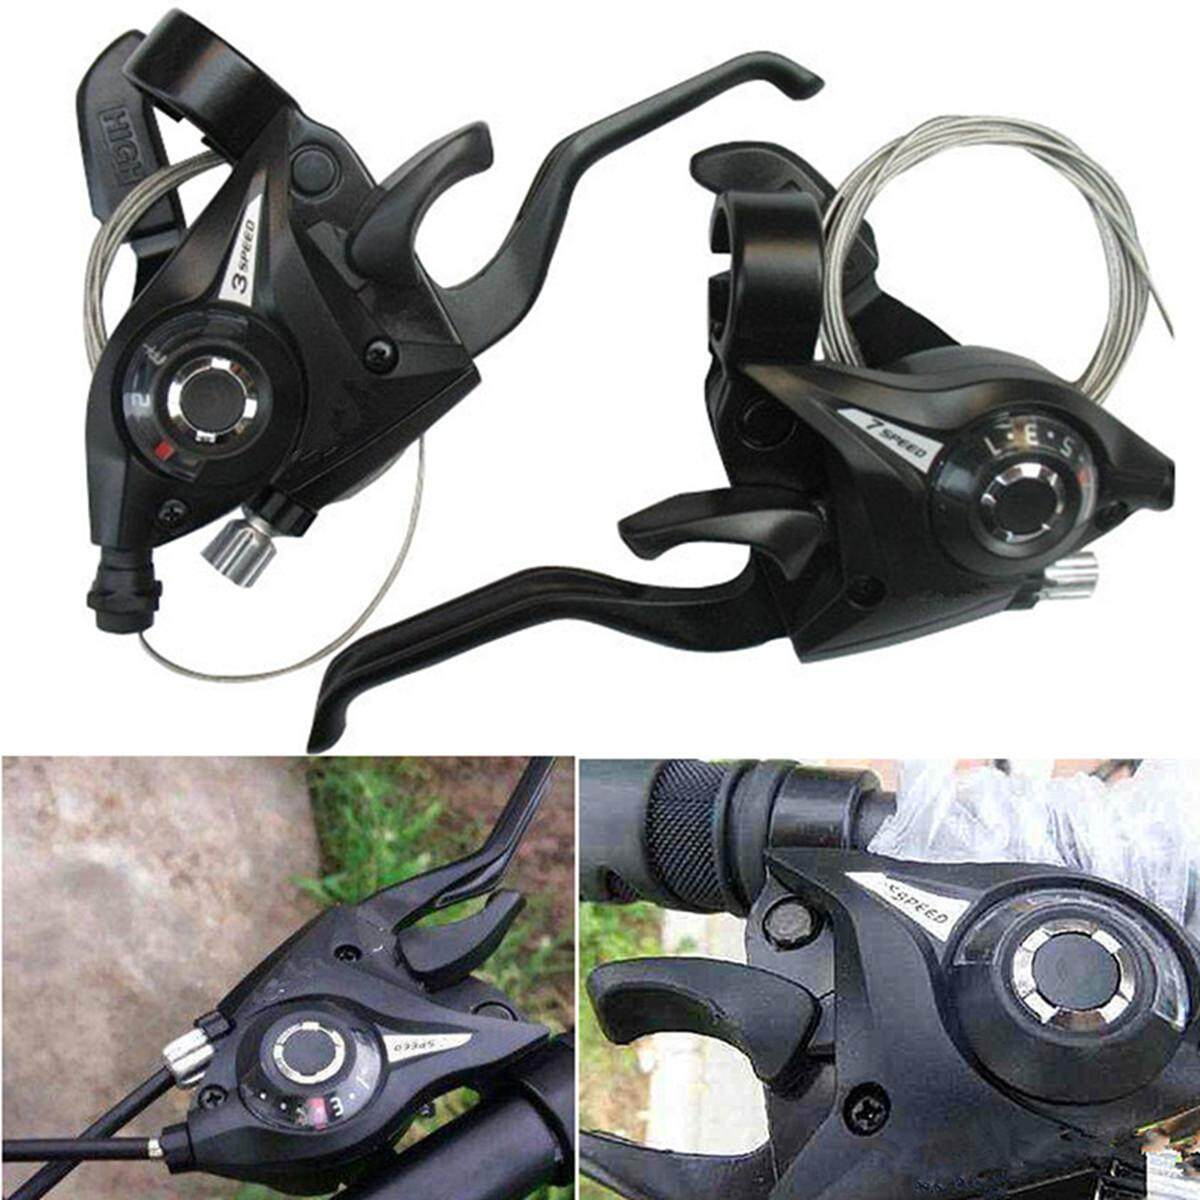 1 Pair 3x7 21speed Mtb Bike Bicycle Trigger Gear Shifters With Inner Shift Cable By Channy.